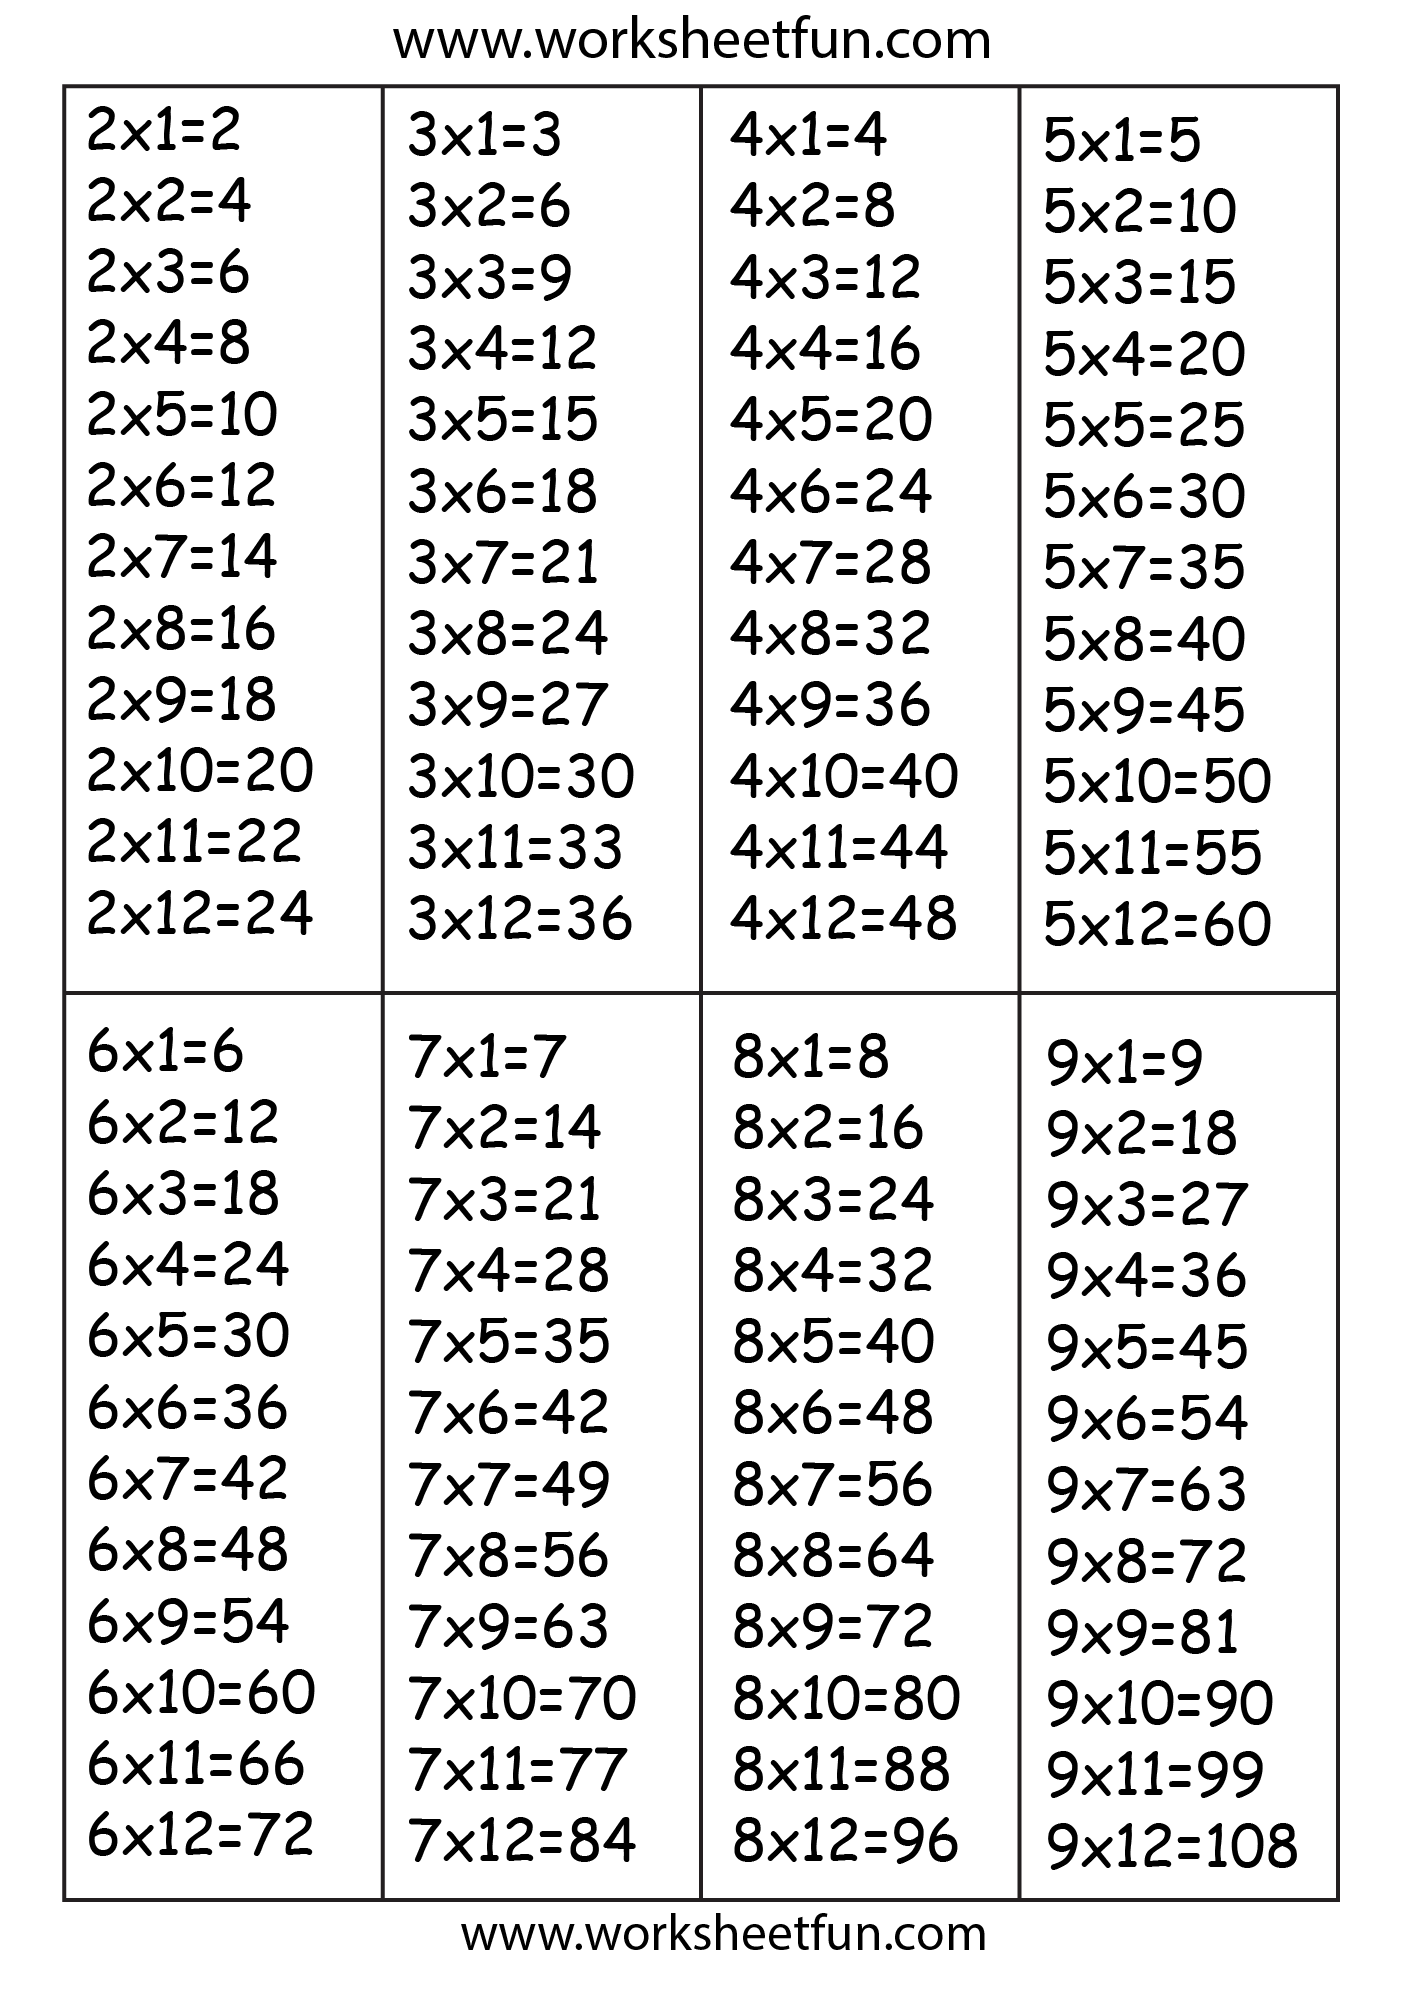 Times Tables FREE Printable Worksheets Worksheetfun – Timetable Maths Worksheets